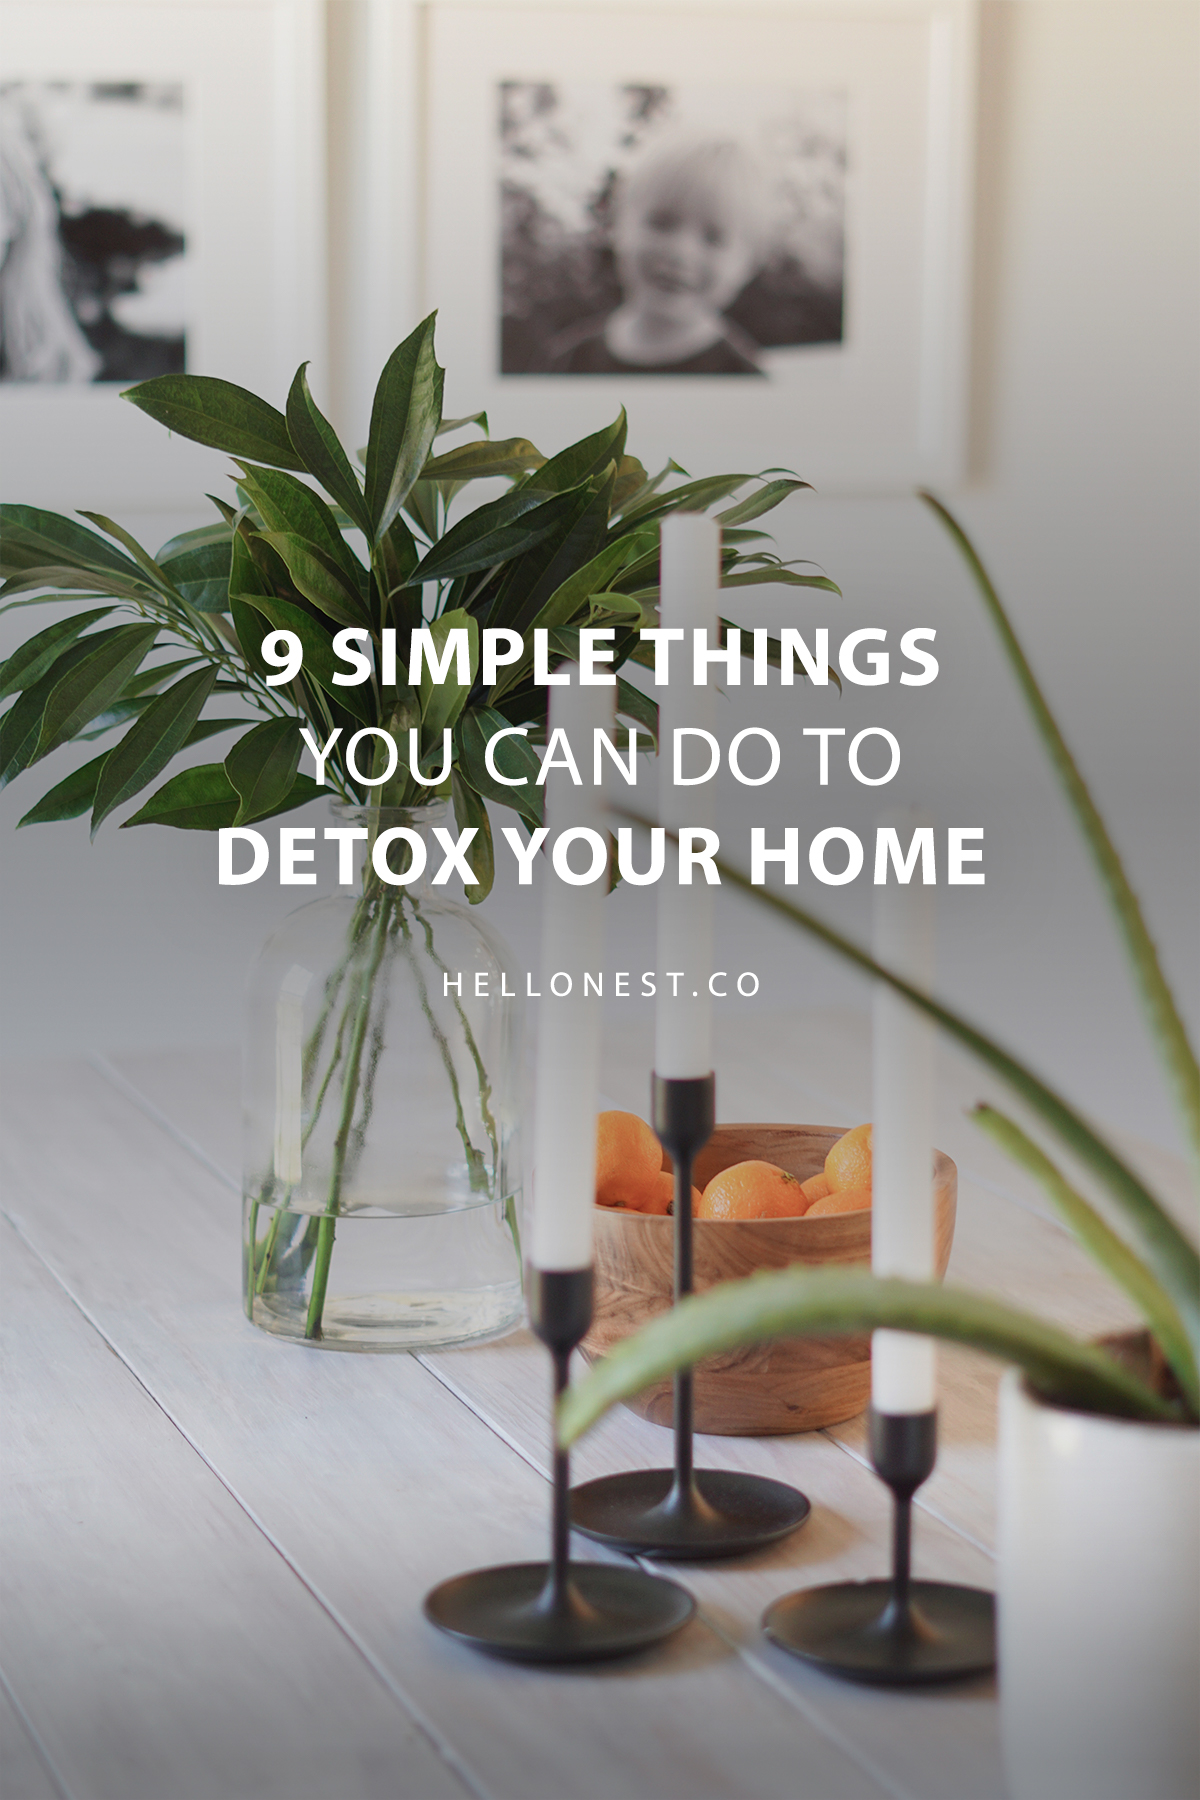 9 Simple Things You Can Do To Detox Your Home